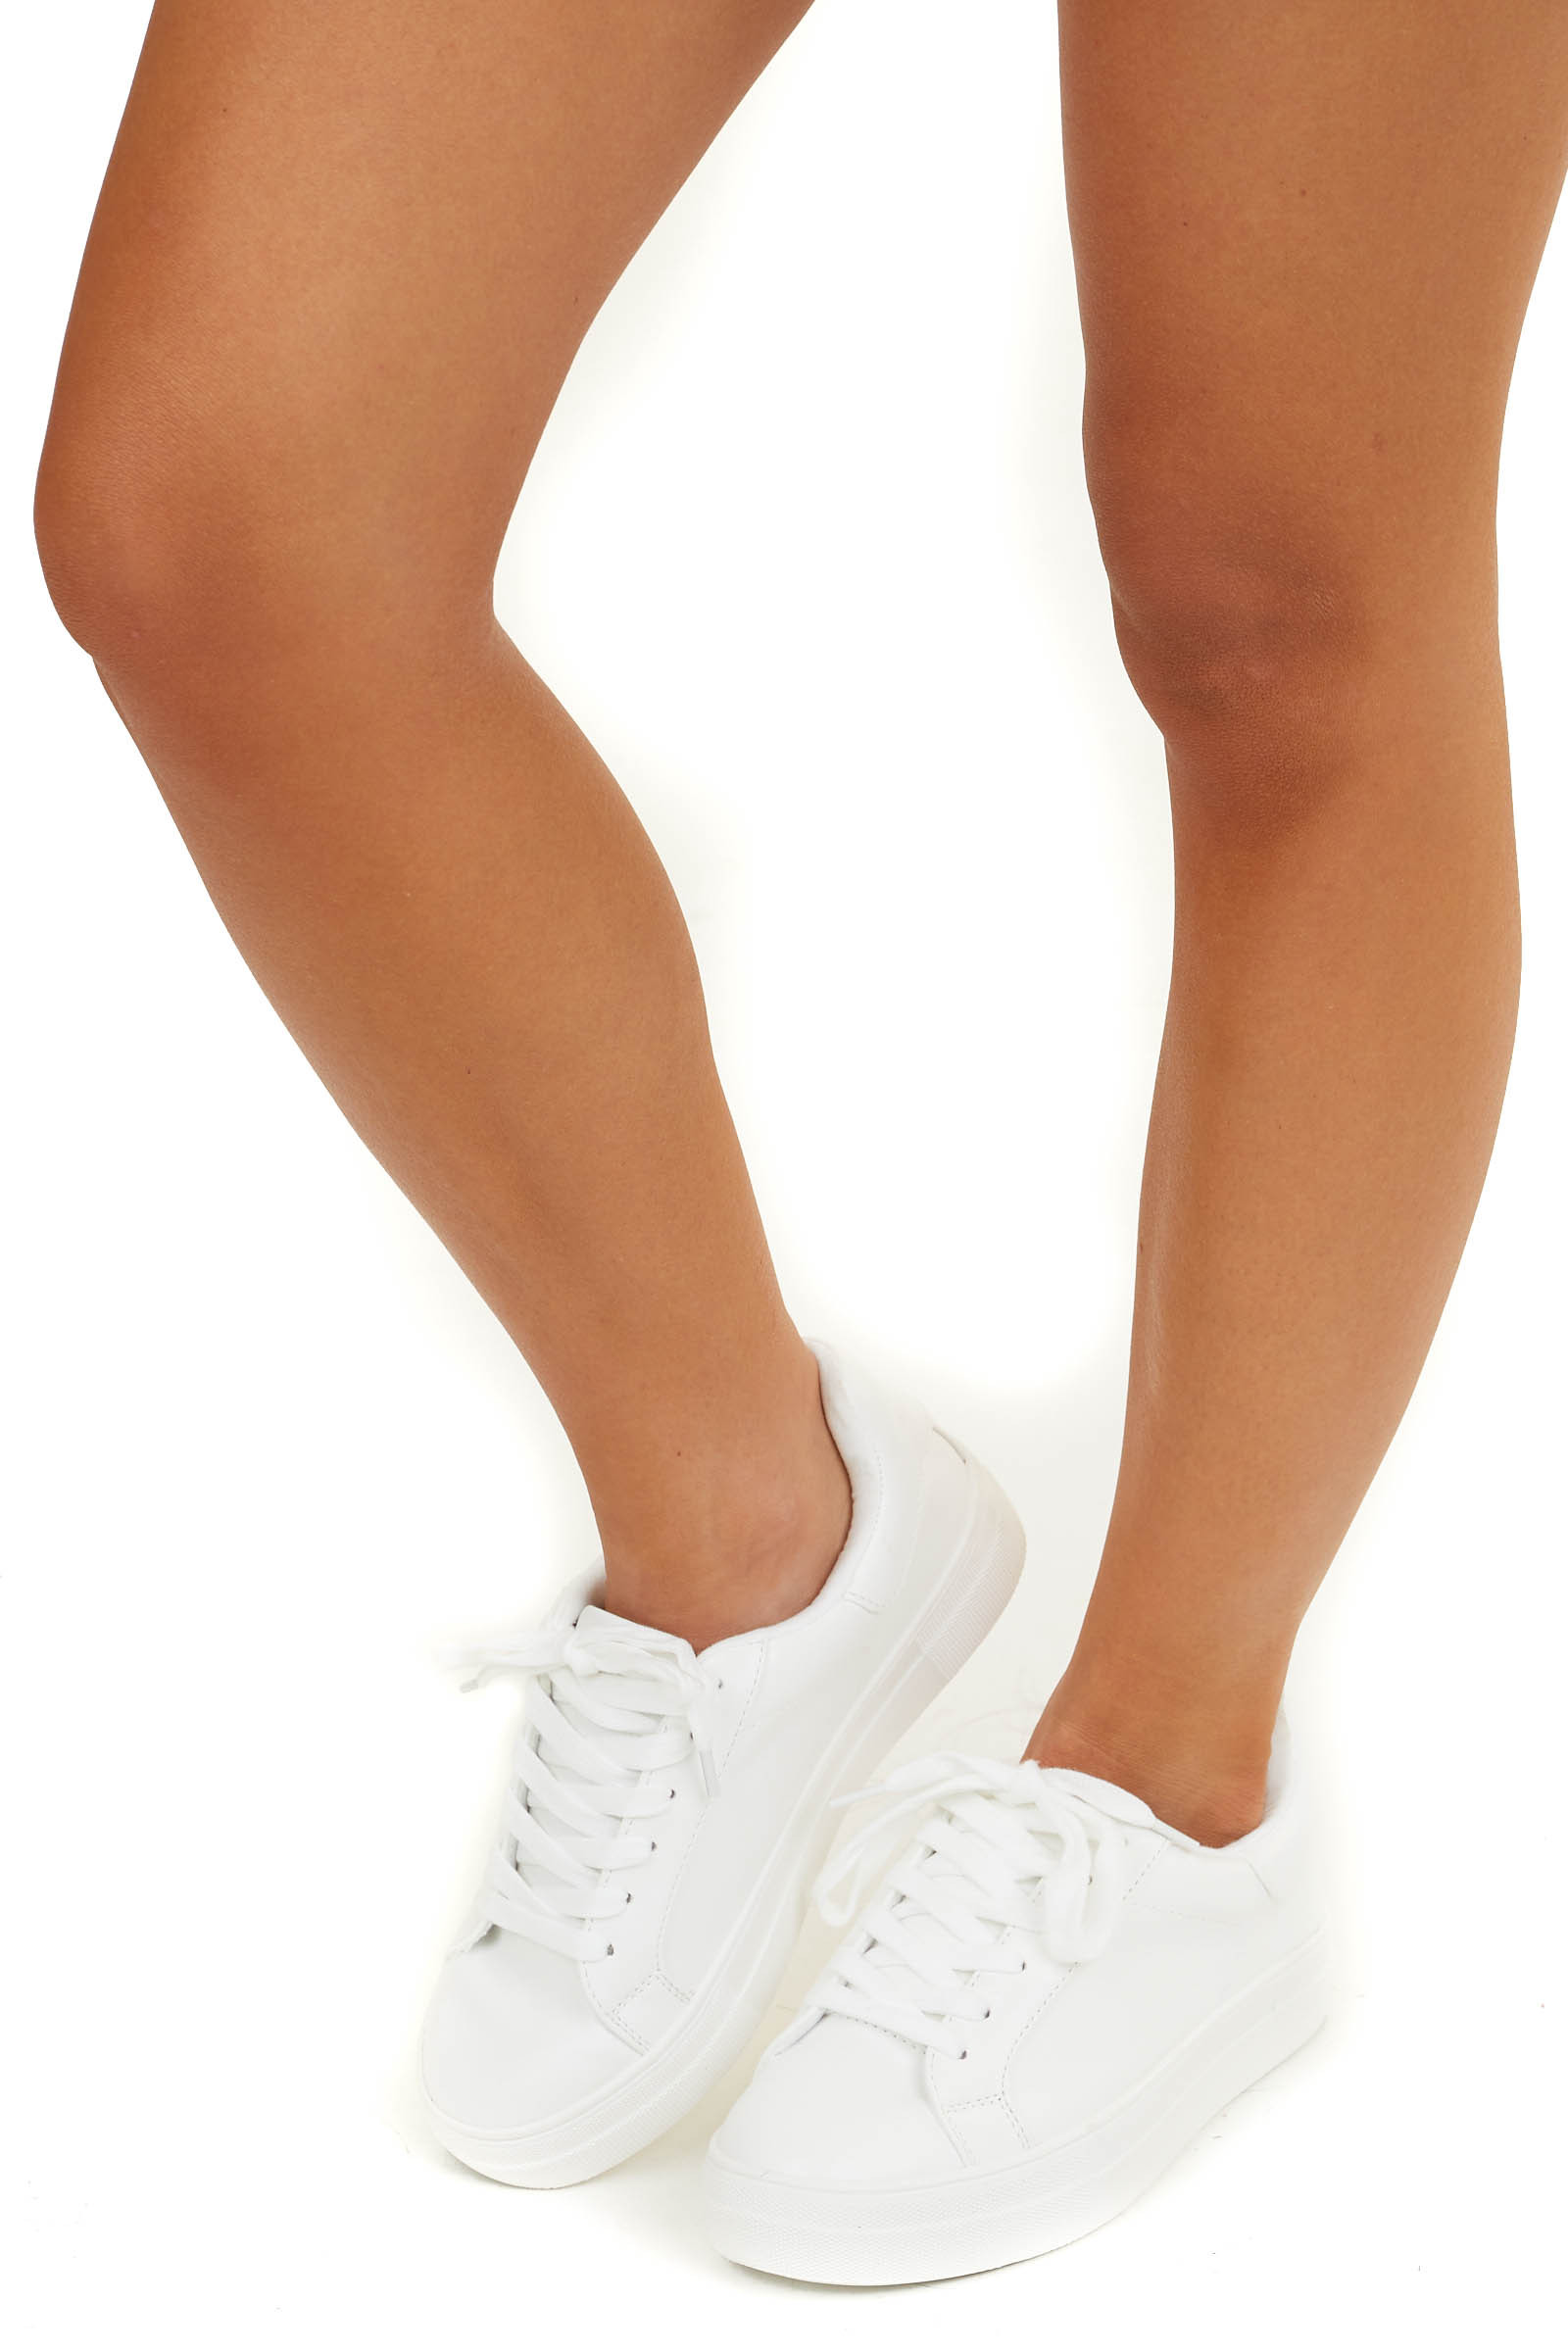 Pearl White Canvas Lace Up Sneakers with Rubber Soles